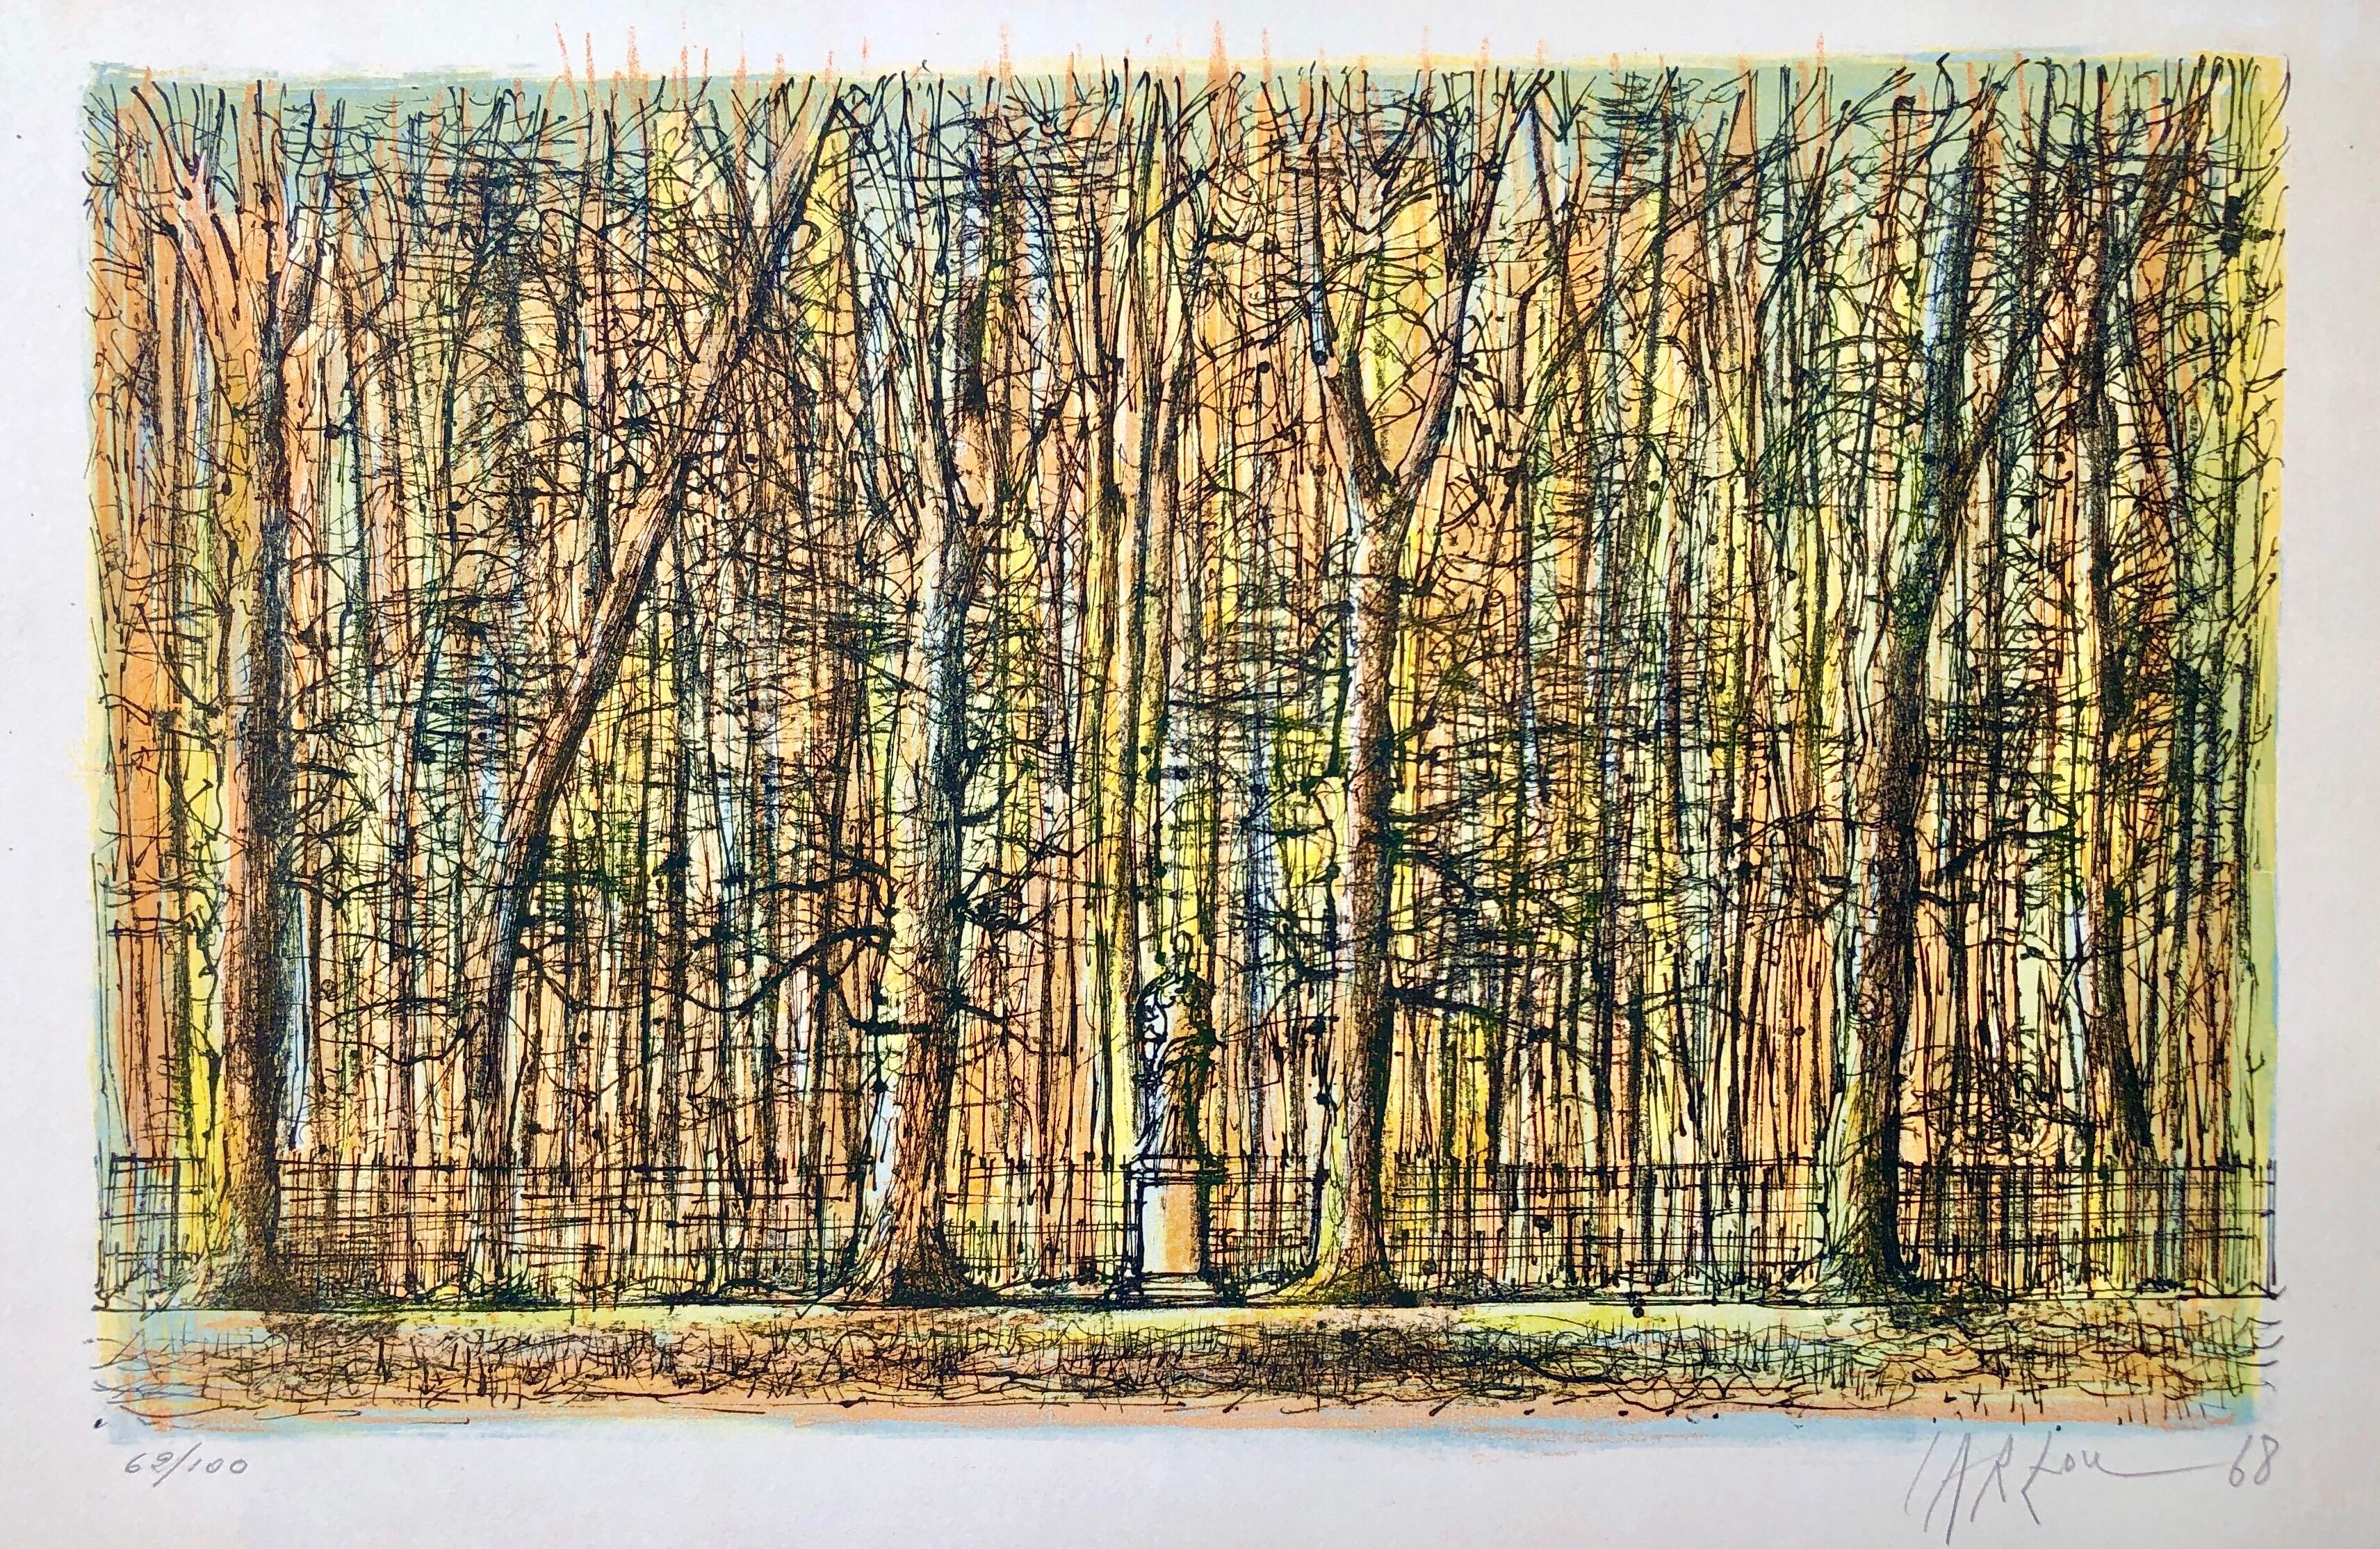 1968 Carzou French Modernist Color Lithograph Versailles Palace Gardens